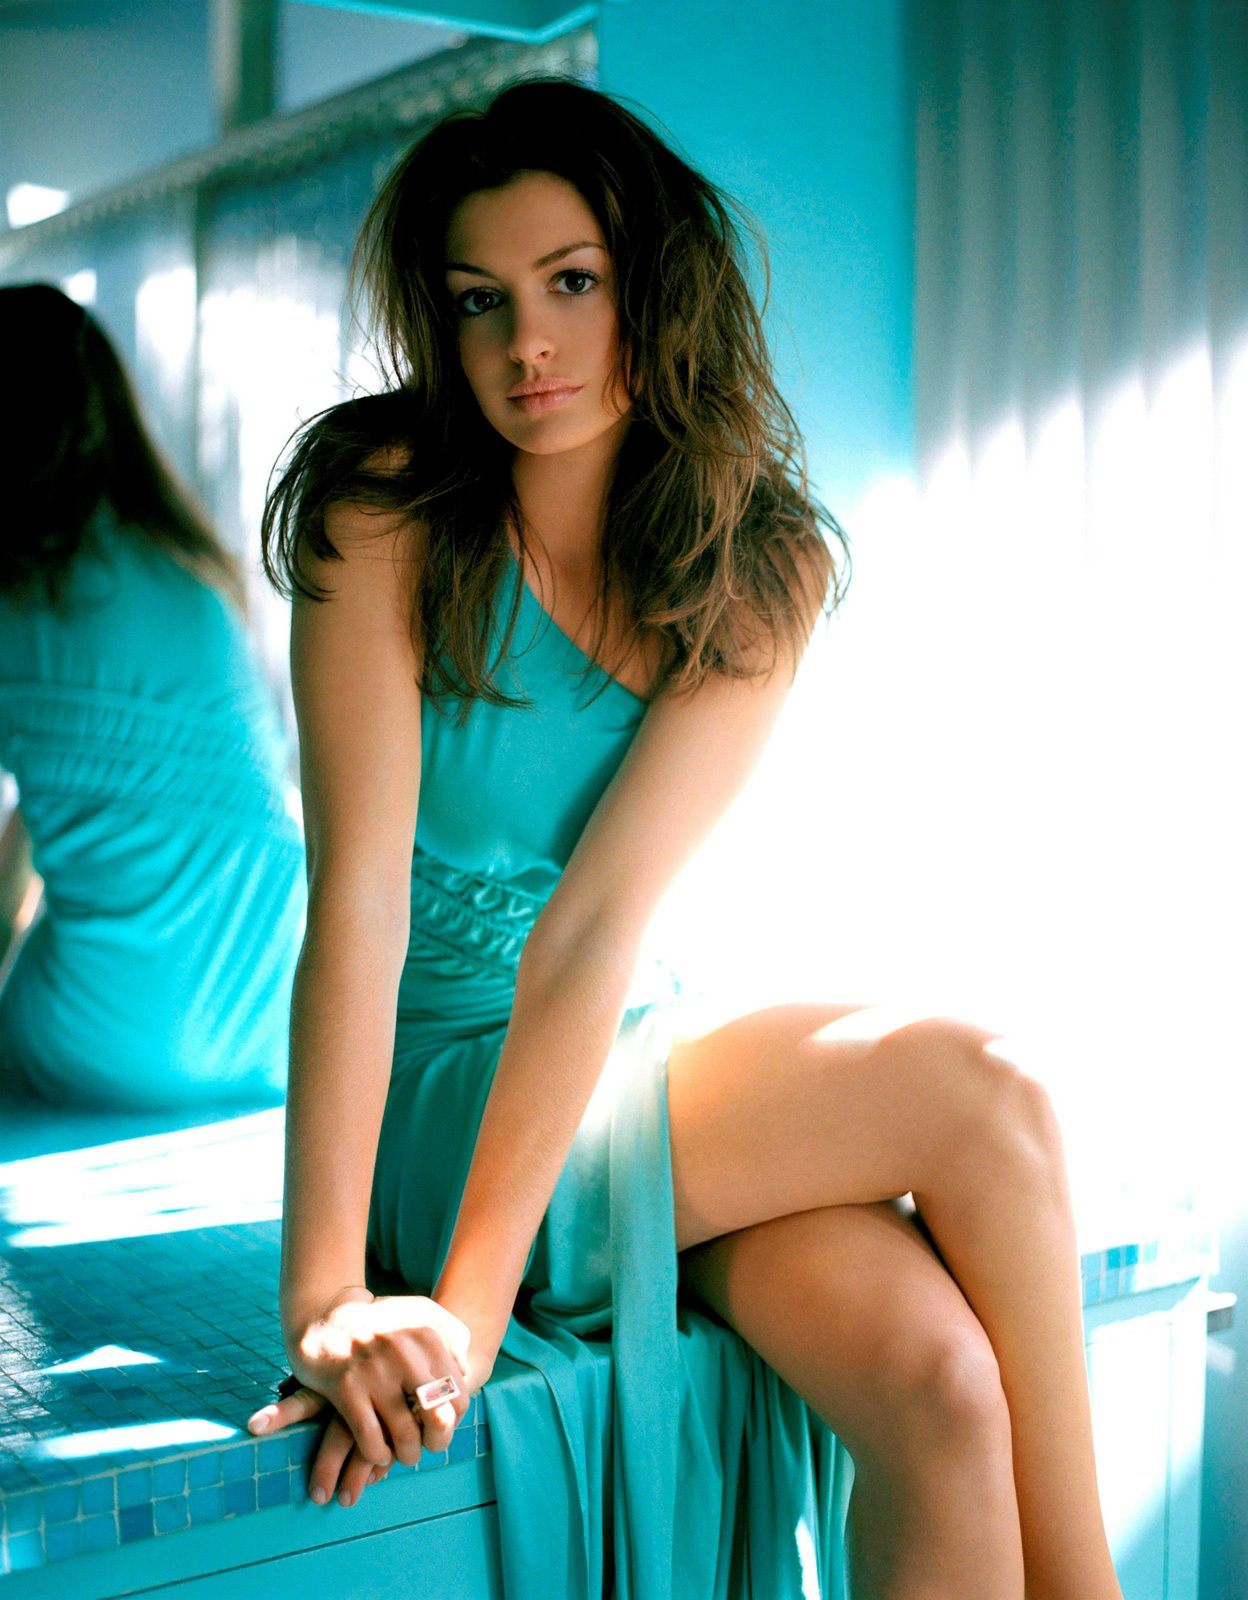 Anne Hathaway - Nicholas Samartis Photoshoot - Sexy Actress Pictures | Hot Actress Pictures - ActressSnaps.com